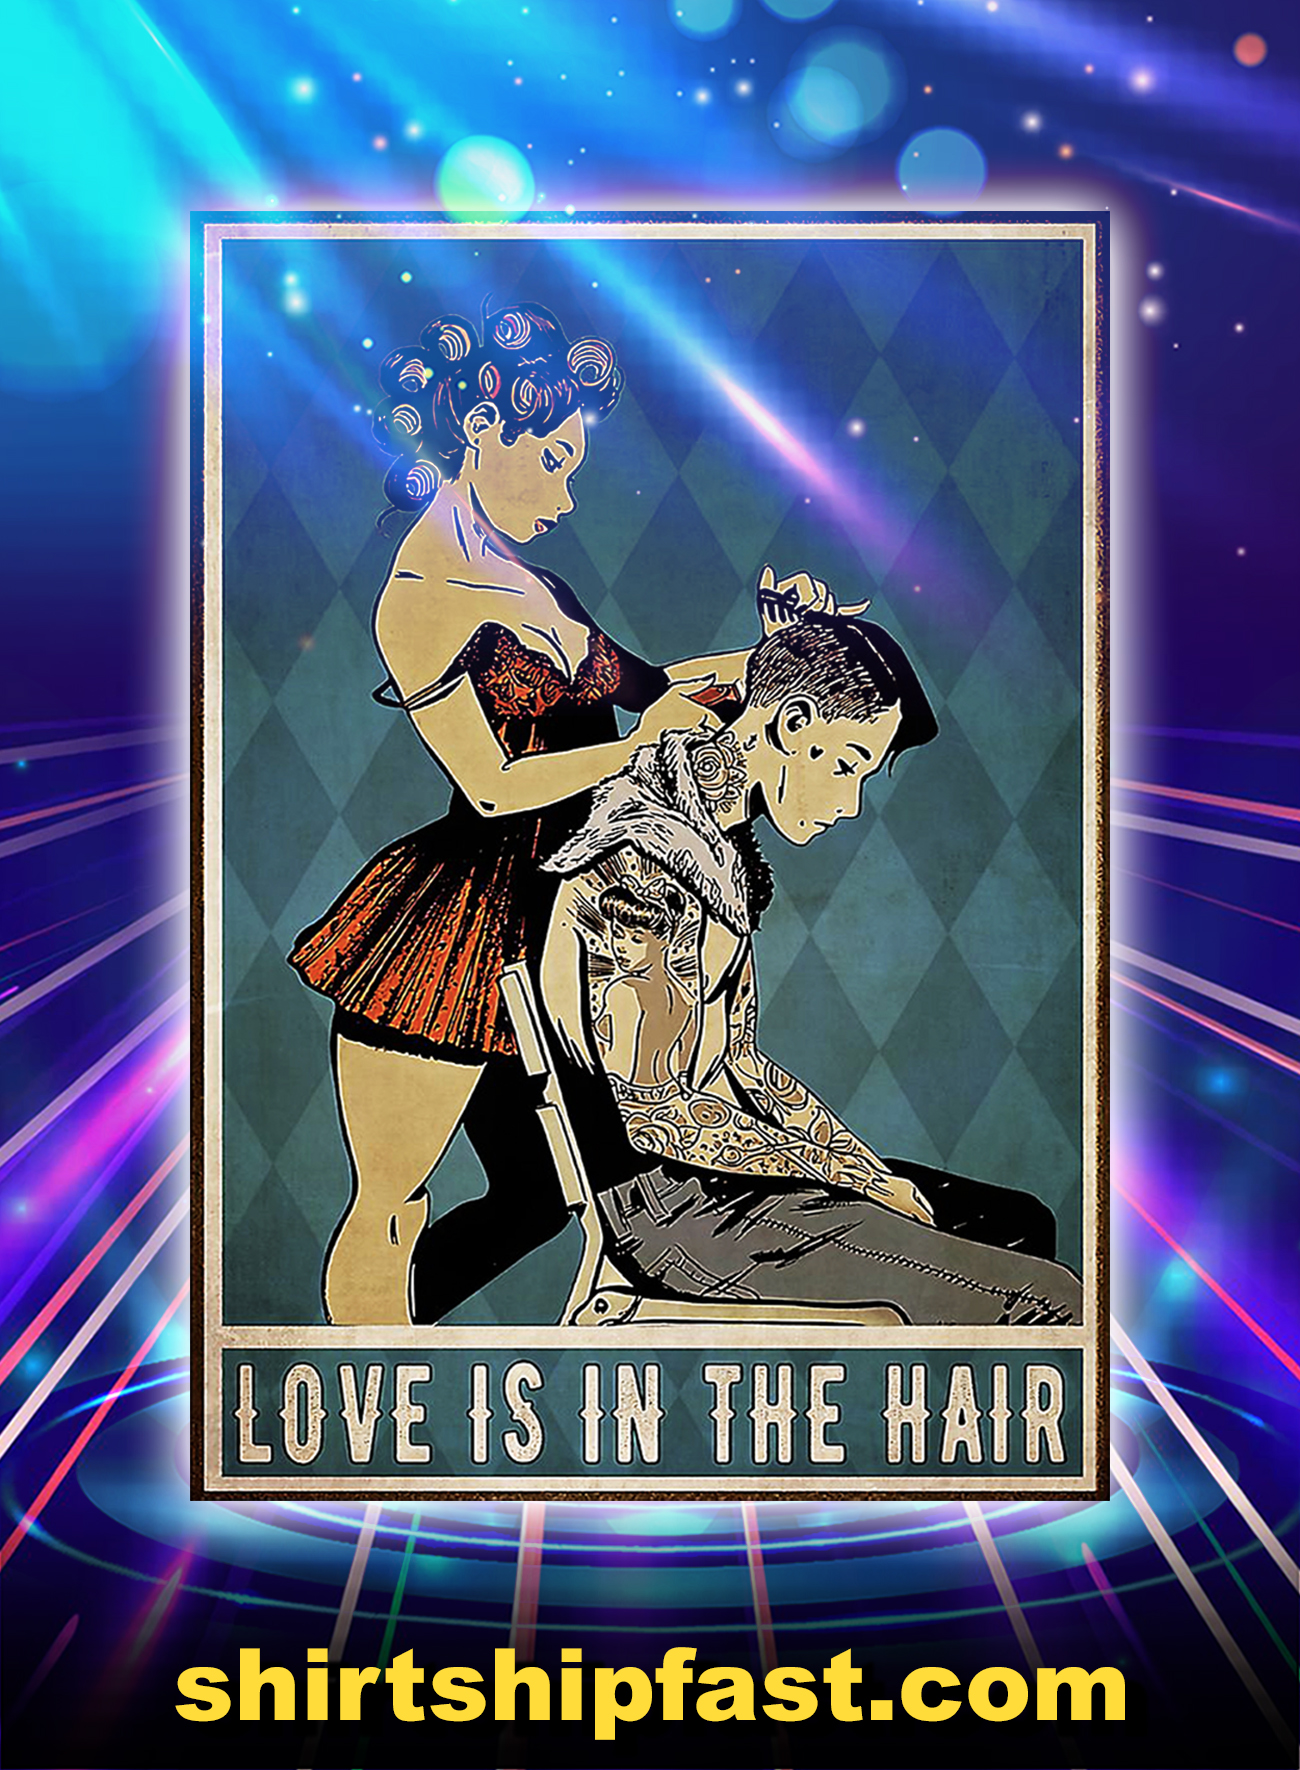 Girl hairdresser love is in the hair poster - A1